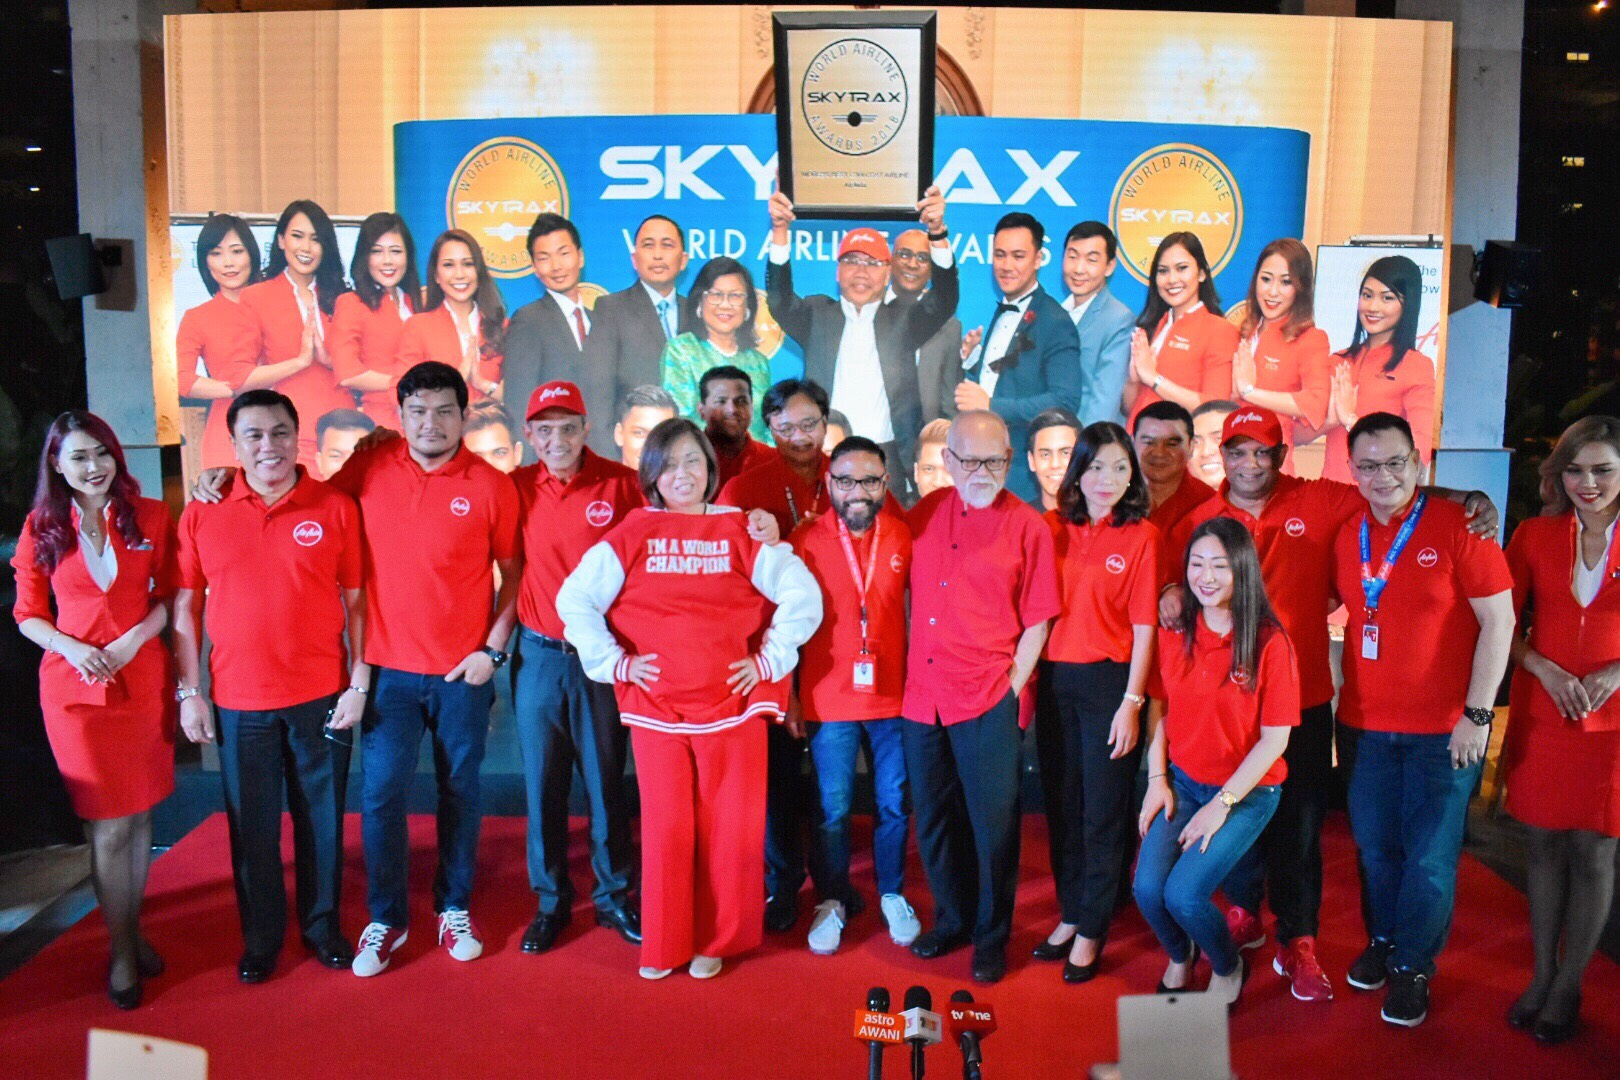 (Third from right standing) AirAsia Group CEO Tony Fernandes, (Sixth from right standing) Founder of AirAsia Dato Pahamin Ab Rajab, AirAsia CEOs and Cabin Crew.